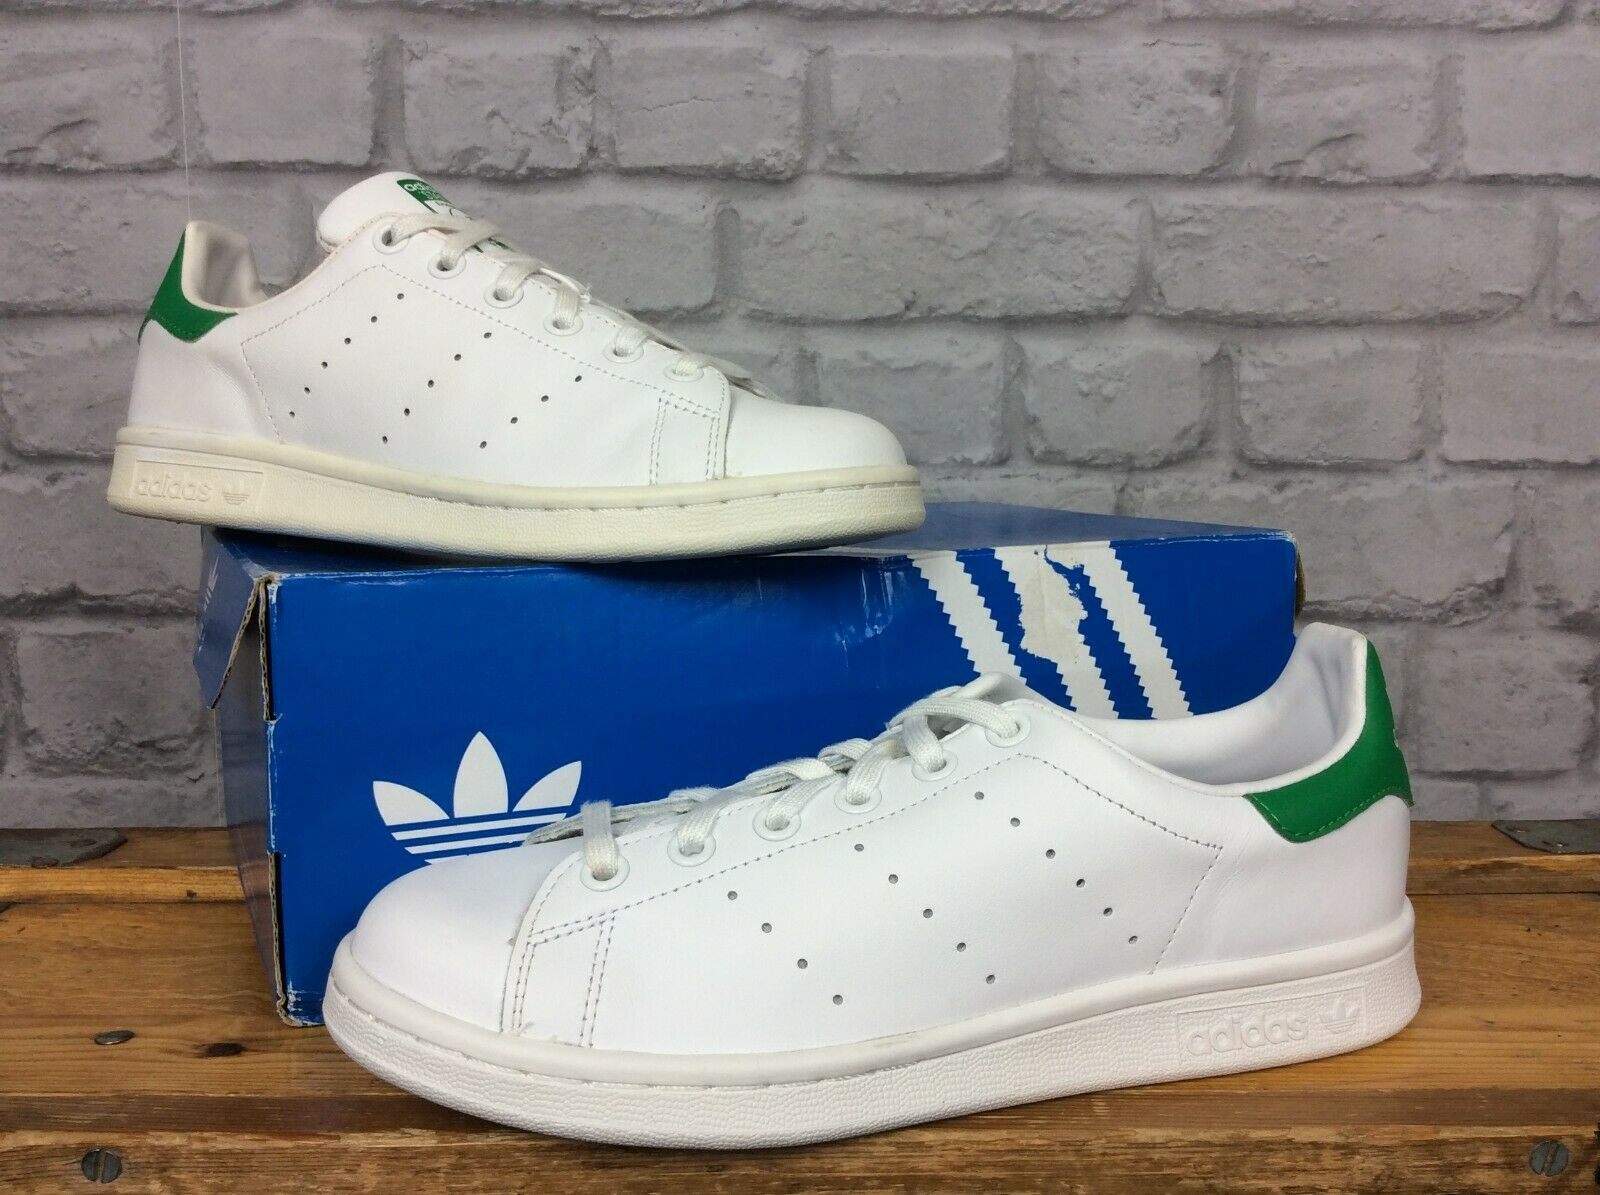 ADIDAS LADIES STAN SMITH GREEN WHITE LEATHER TRAINER VARIOUS SIZES YOUTH